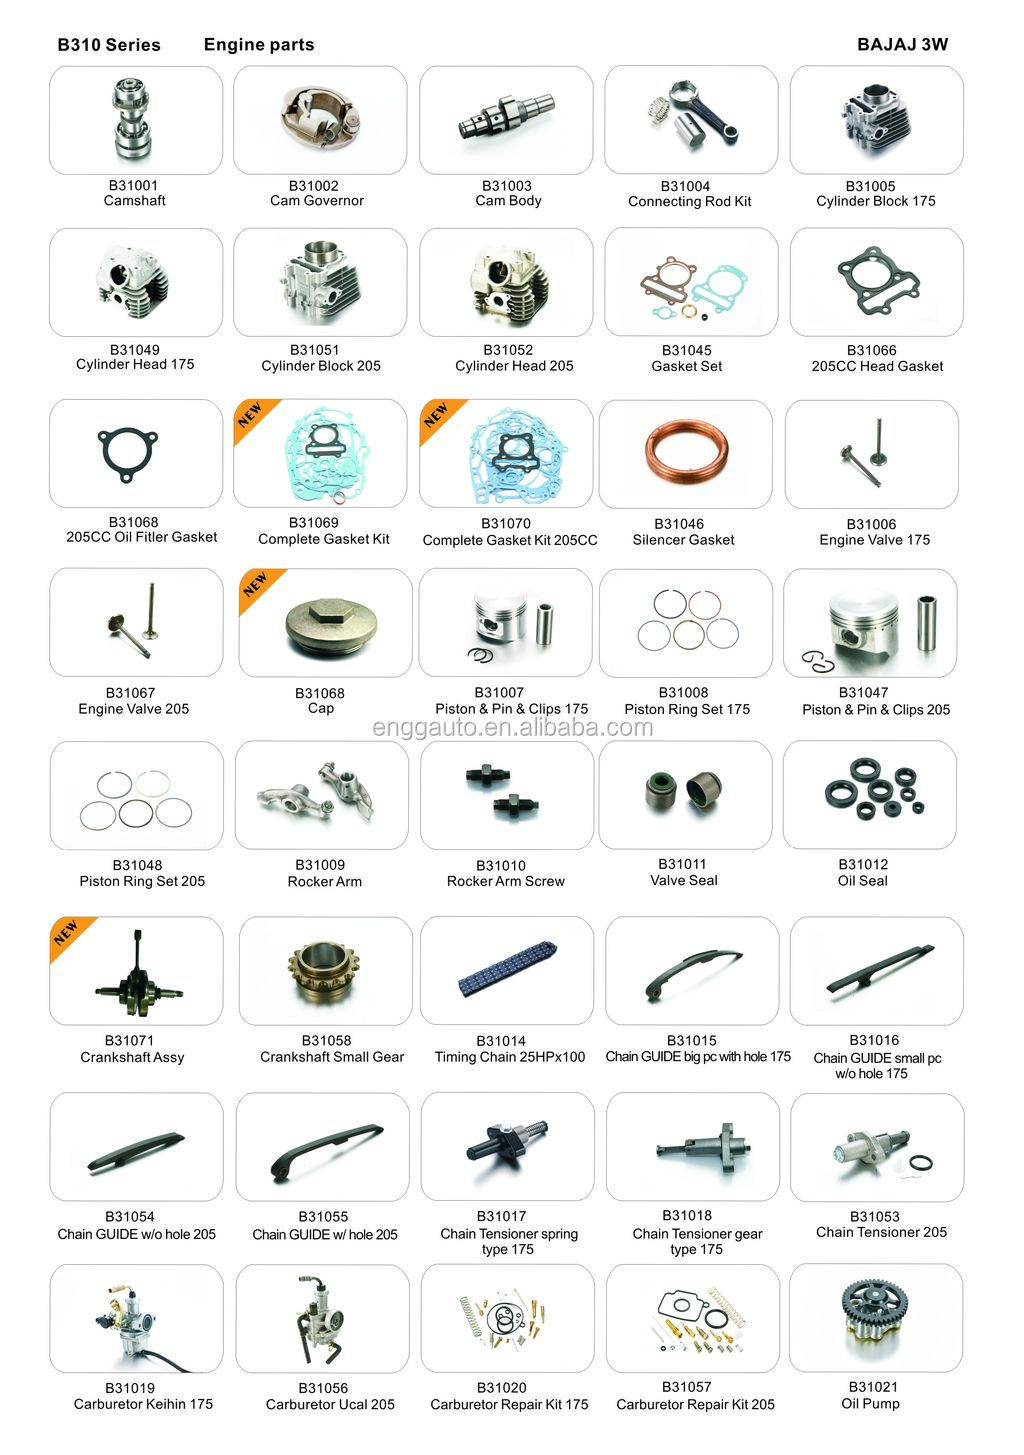 spares parts for bajaj three wheeler, View spares parts for bajaj ...